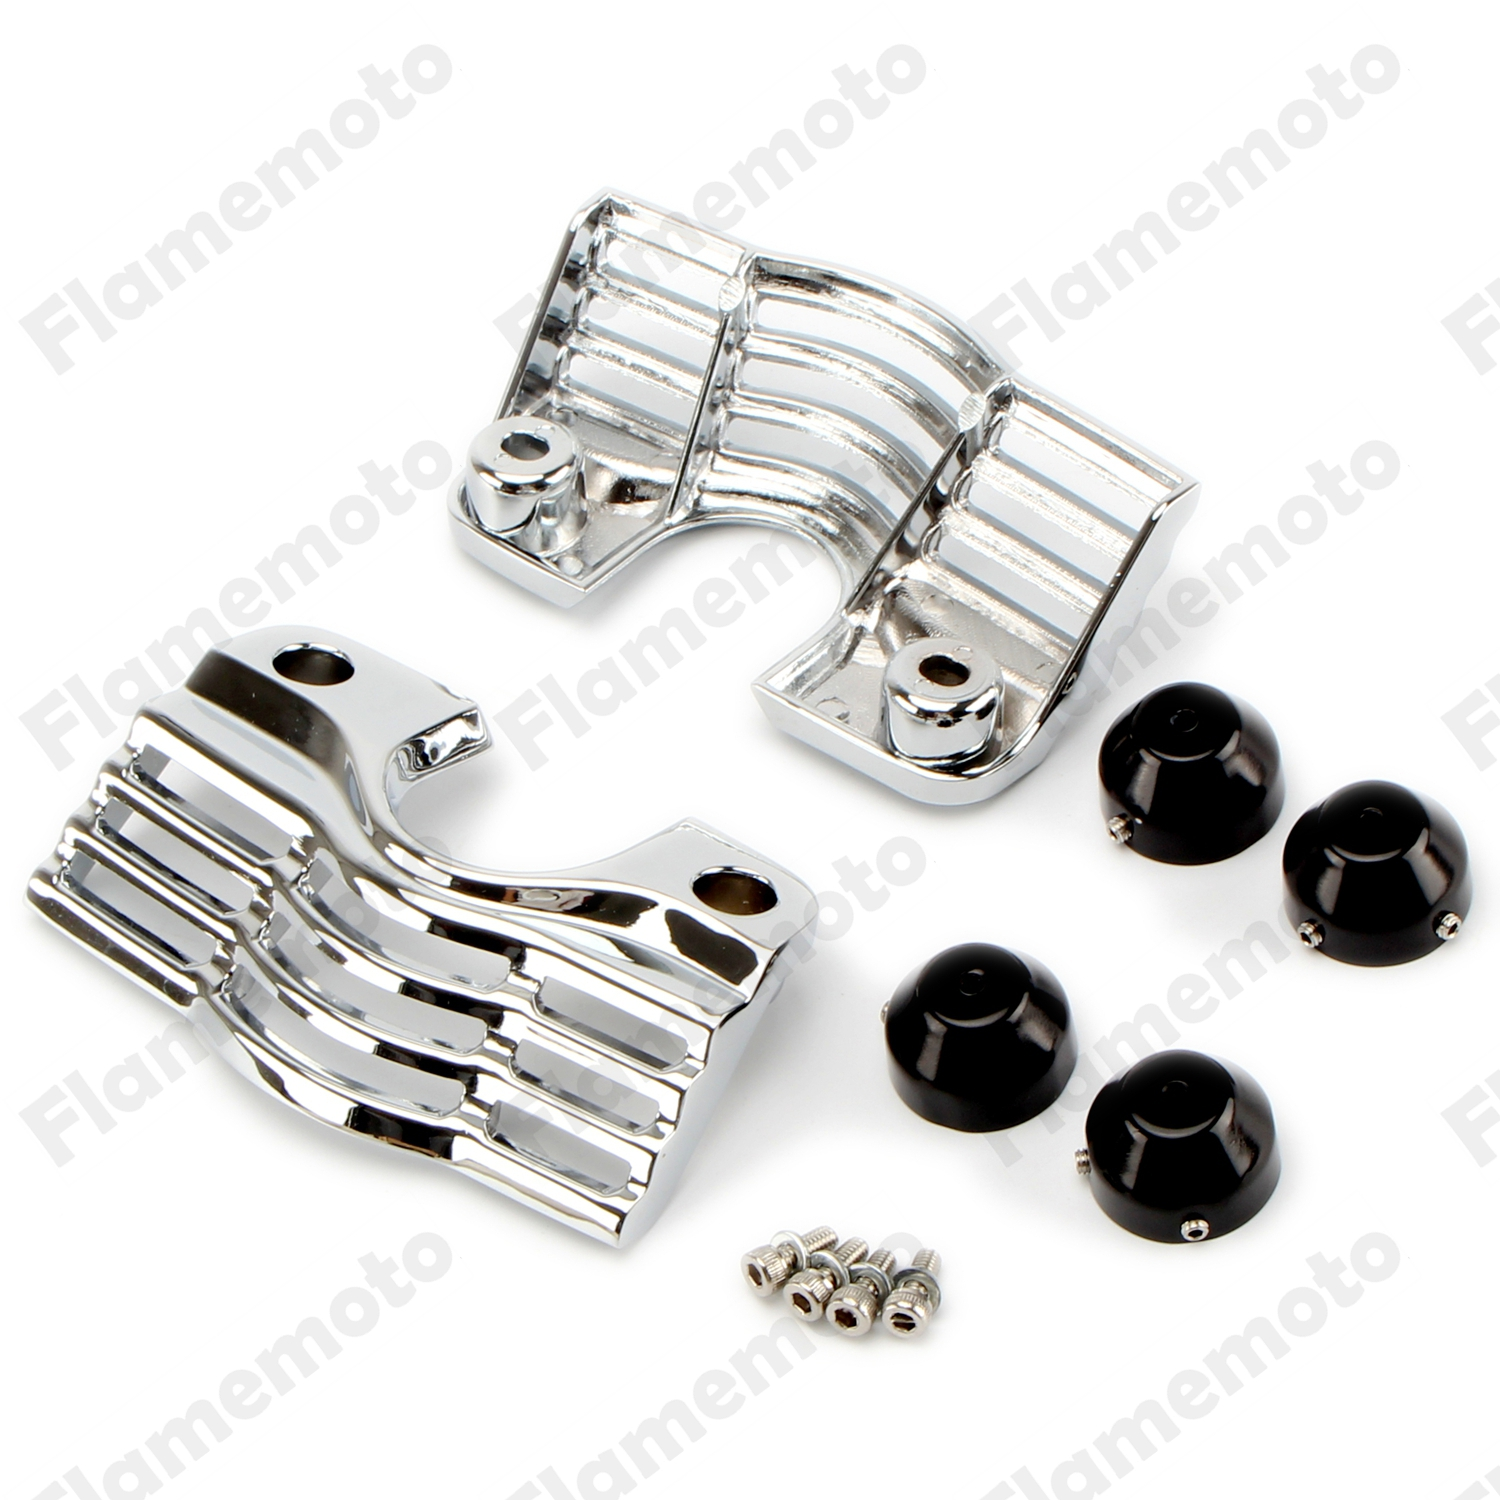 Motorbike Parts Chrome Finned Spark Slotted Plug Head Bolt Covers For Harley Trikes Road King<br><br>Aliexpress